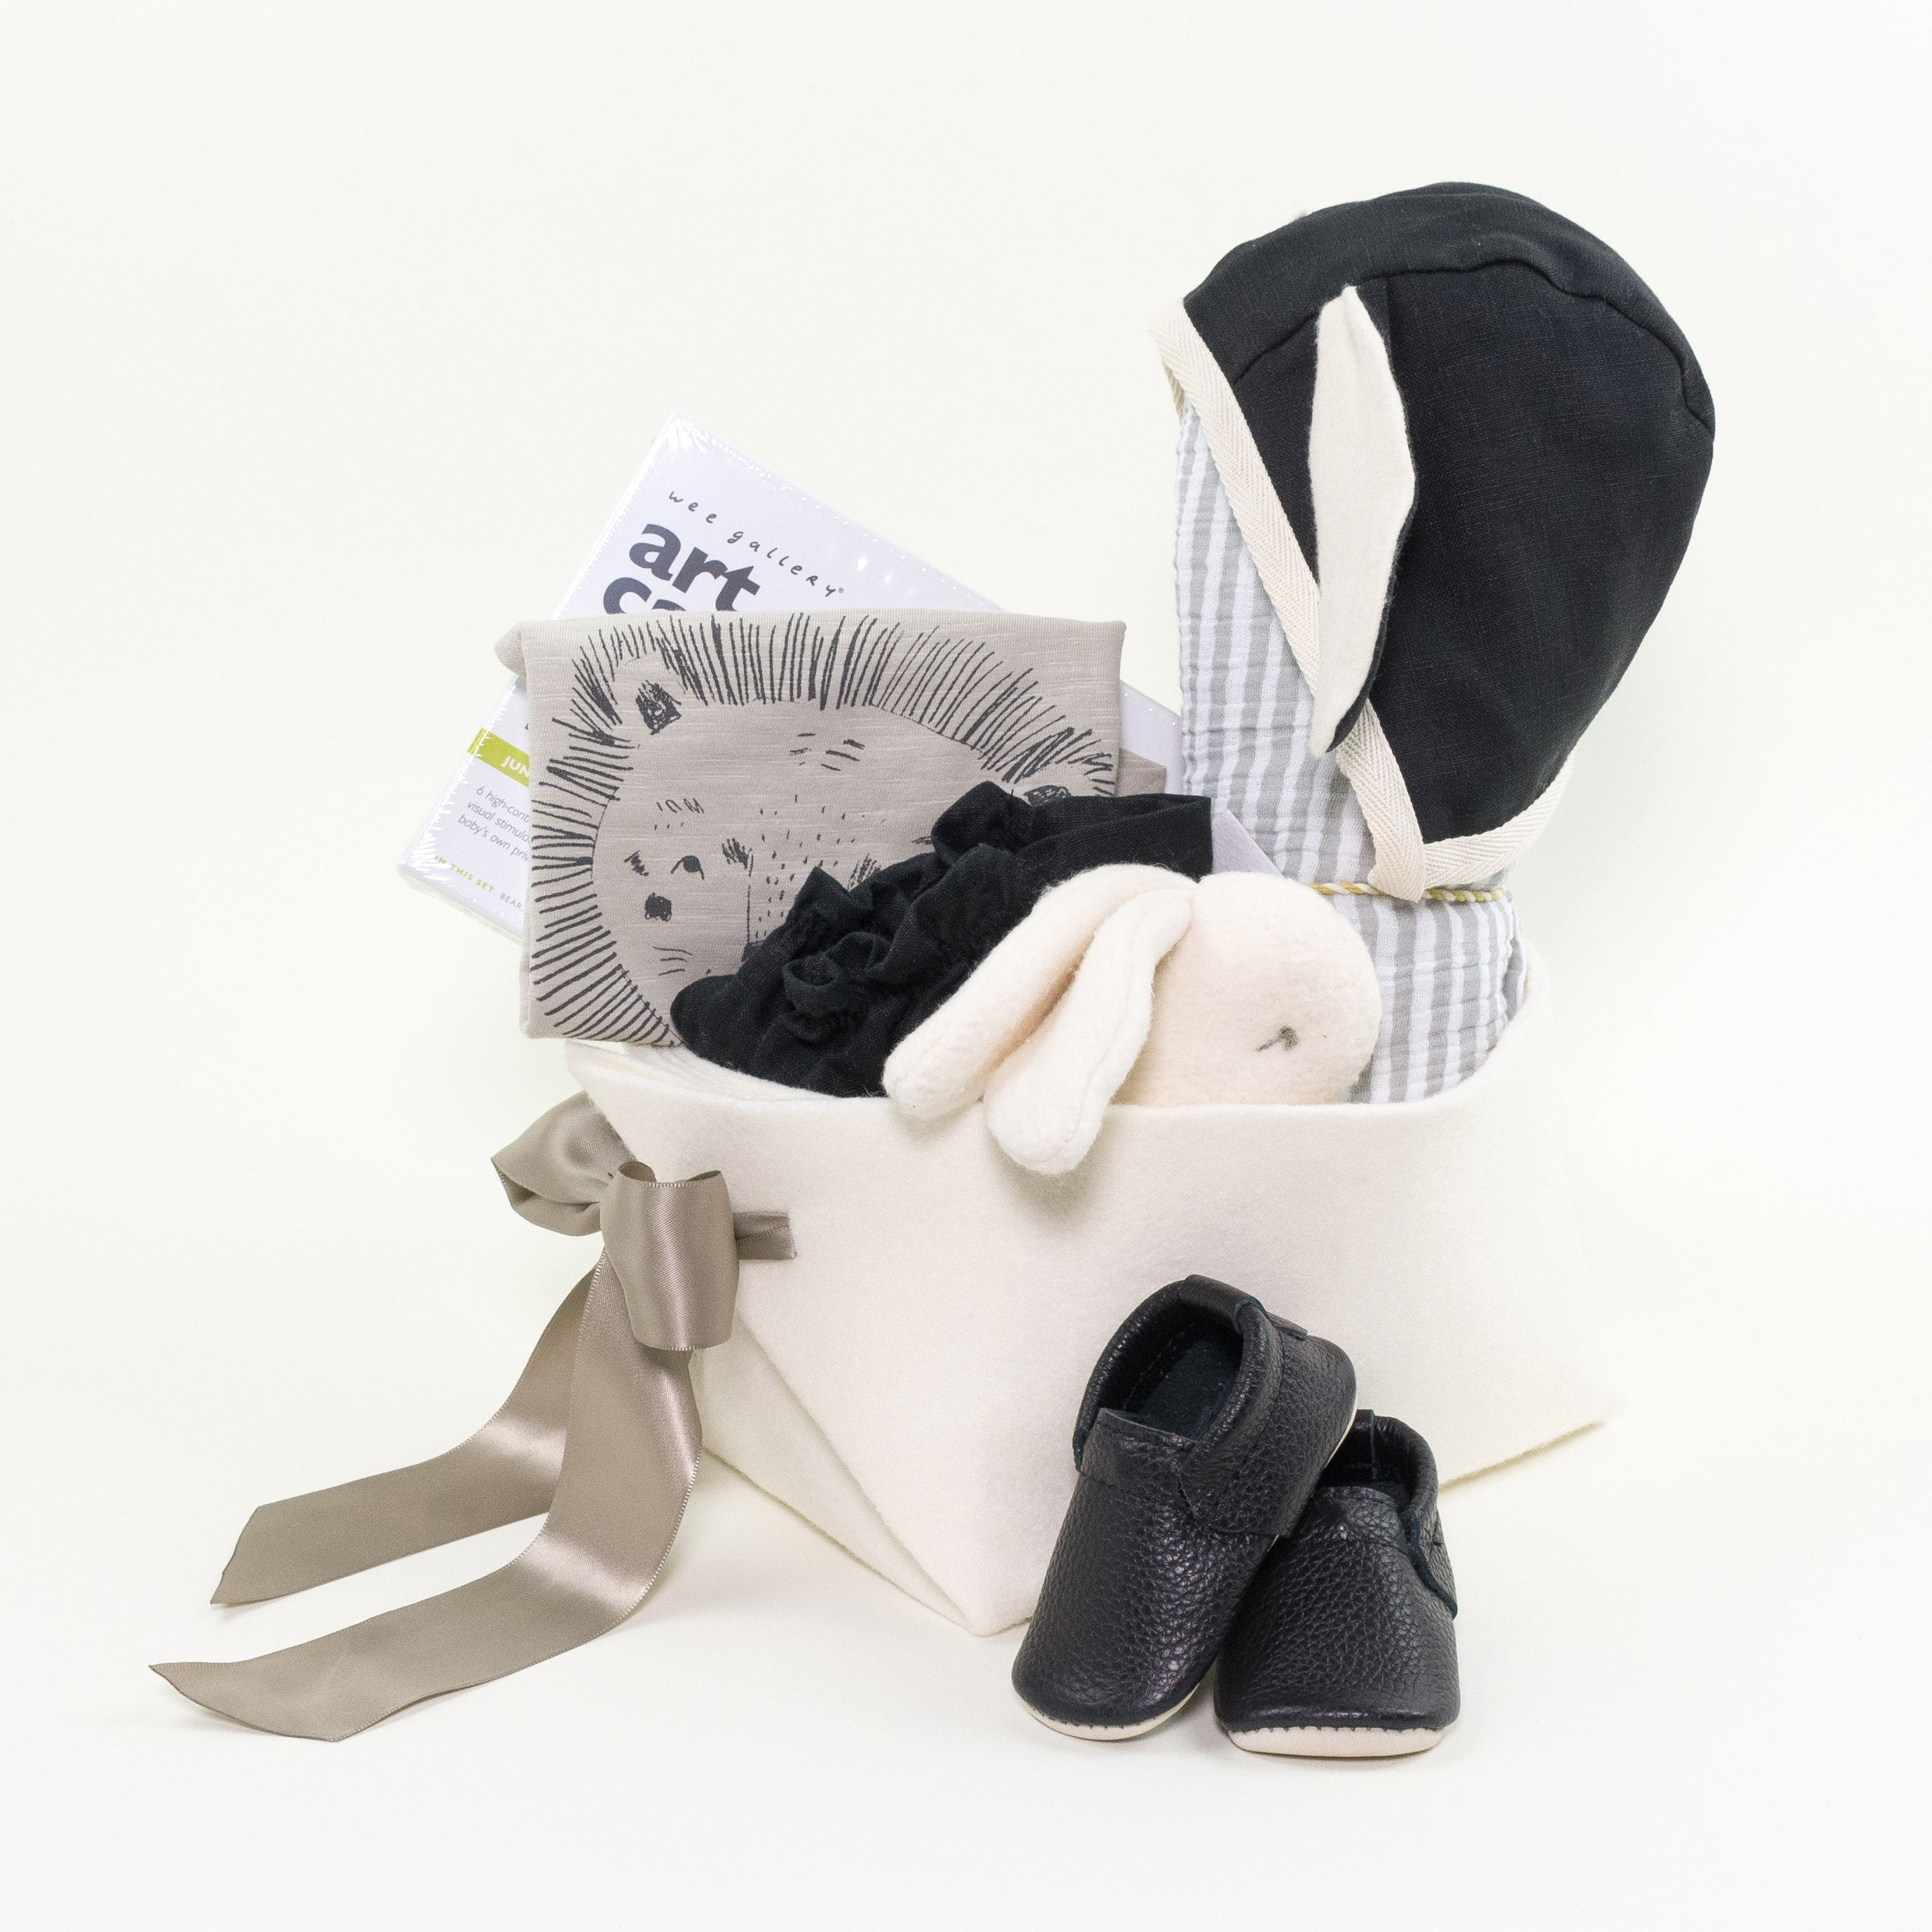 Luxury Baby Gift Basket featuring Fidoodle rattle at Bonjour Baby Baskets